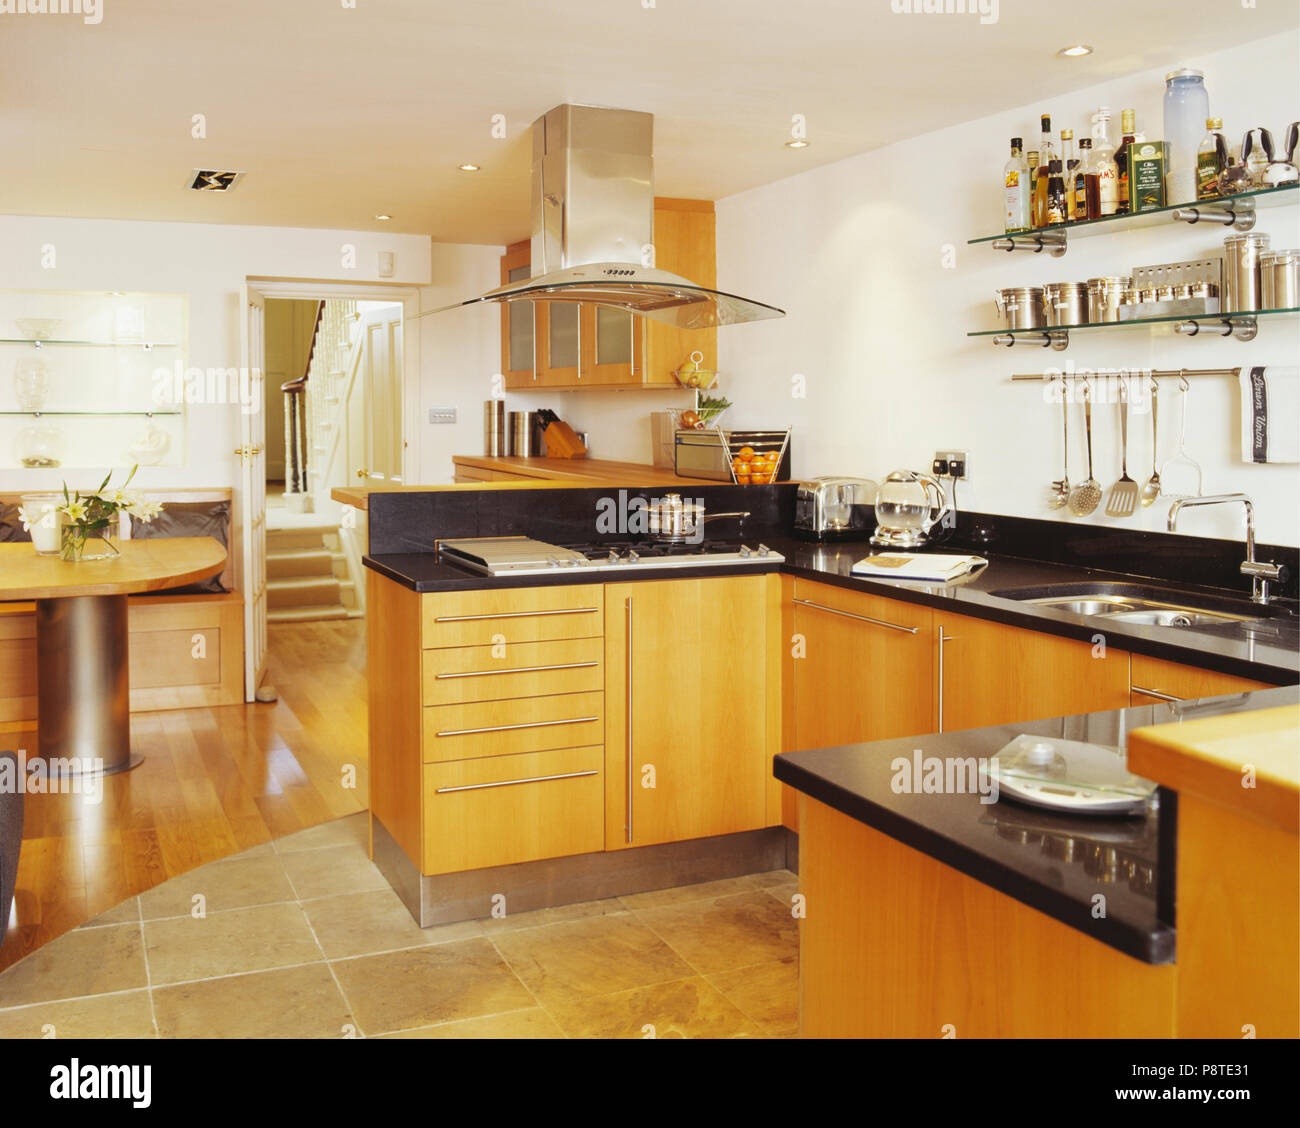 Black Worktops Stock Photos & Black Worktops Stock Images